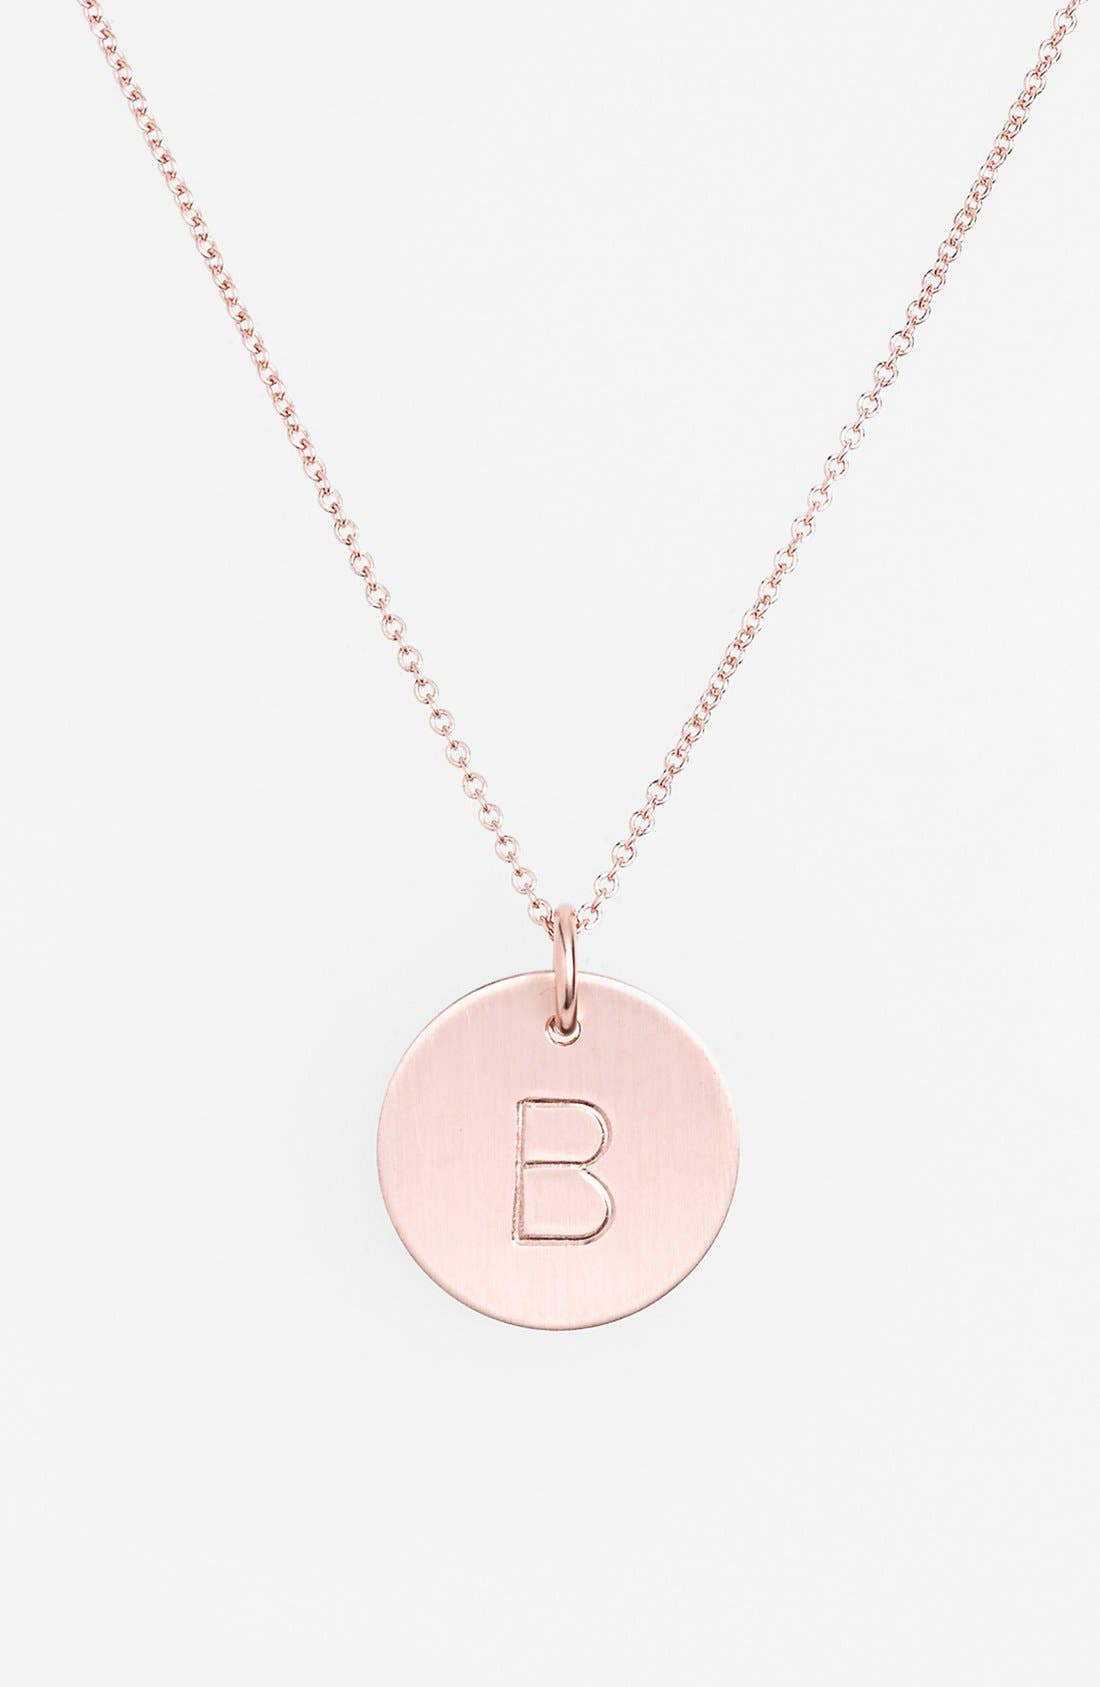 14k-Rose Gold Fill Initial Disc Necklace,                         Main,                         color, 14K Rose Gold Fill B